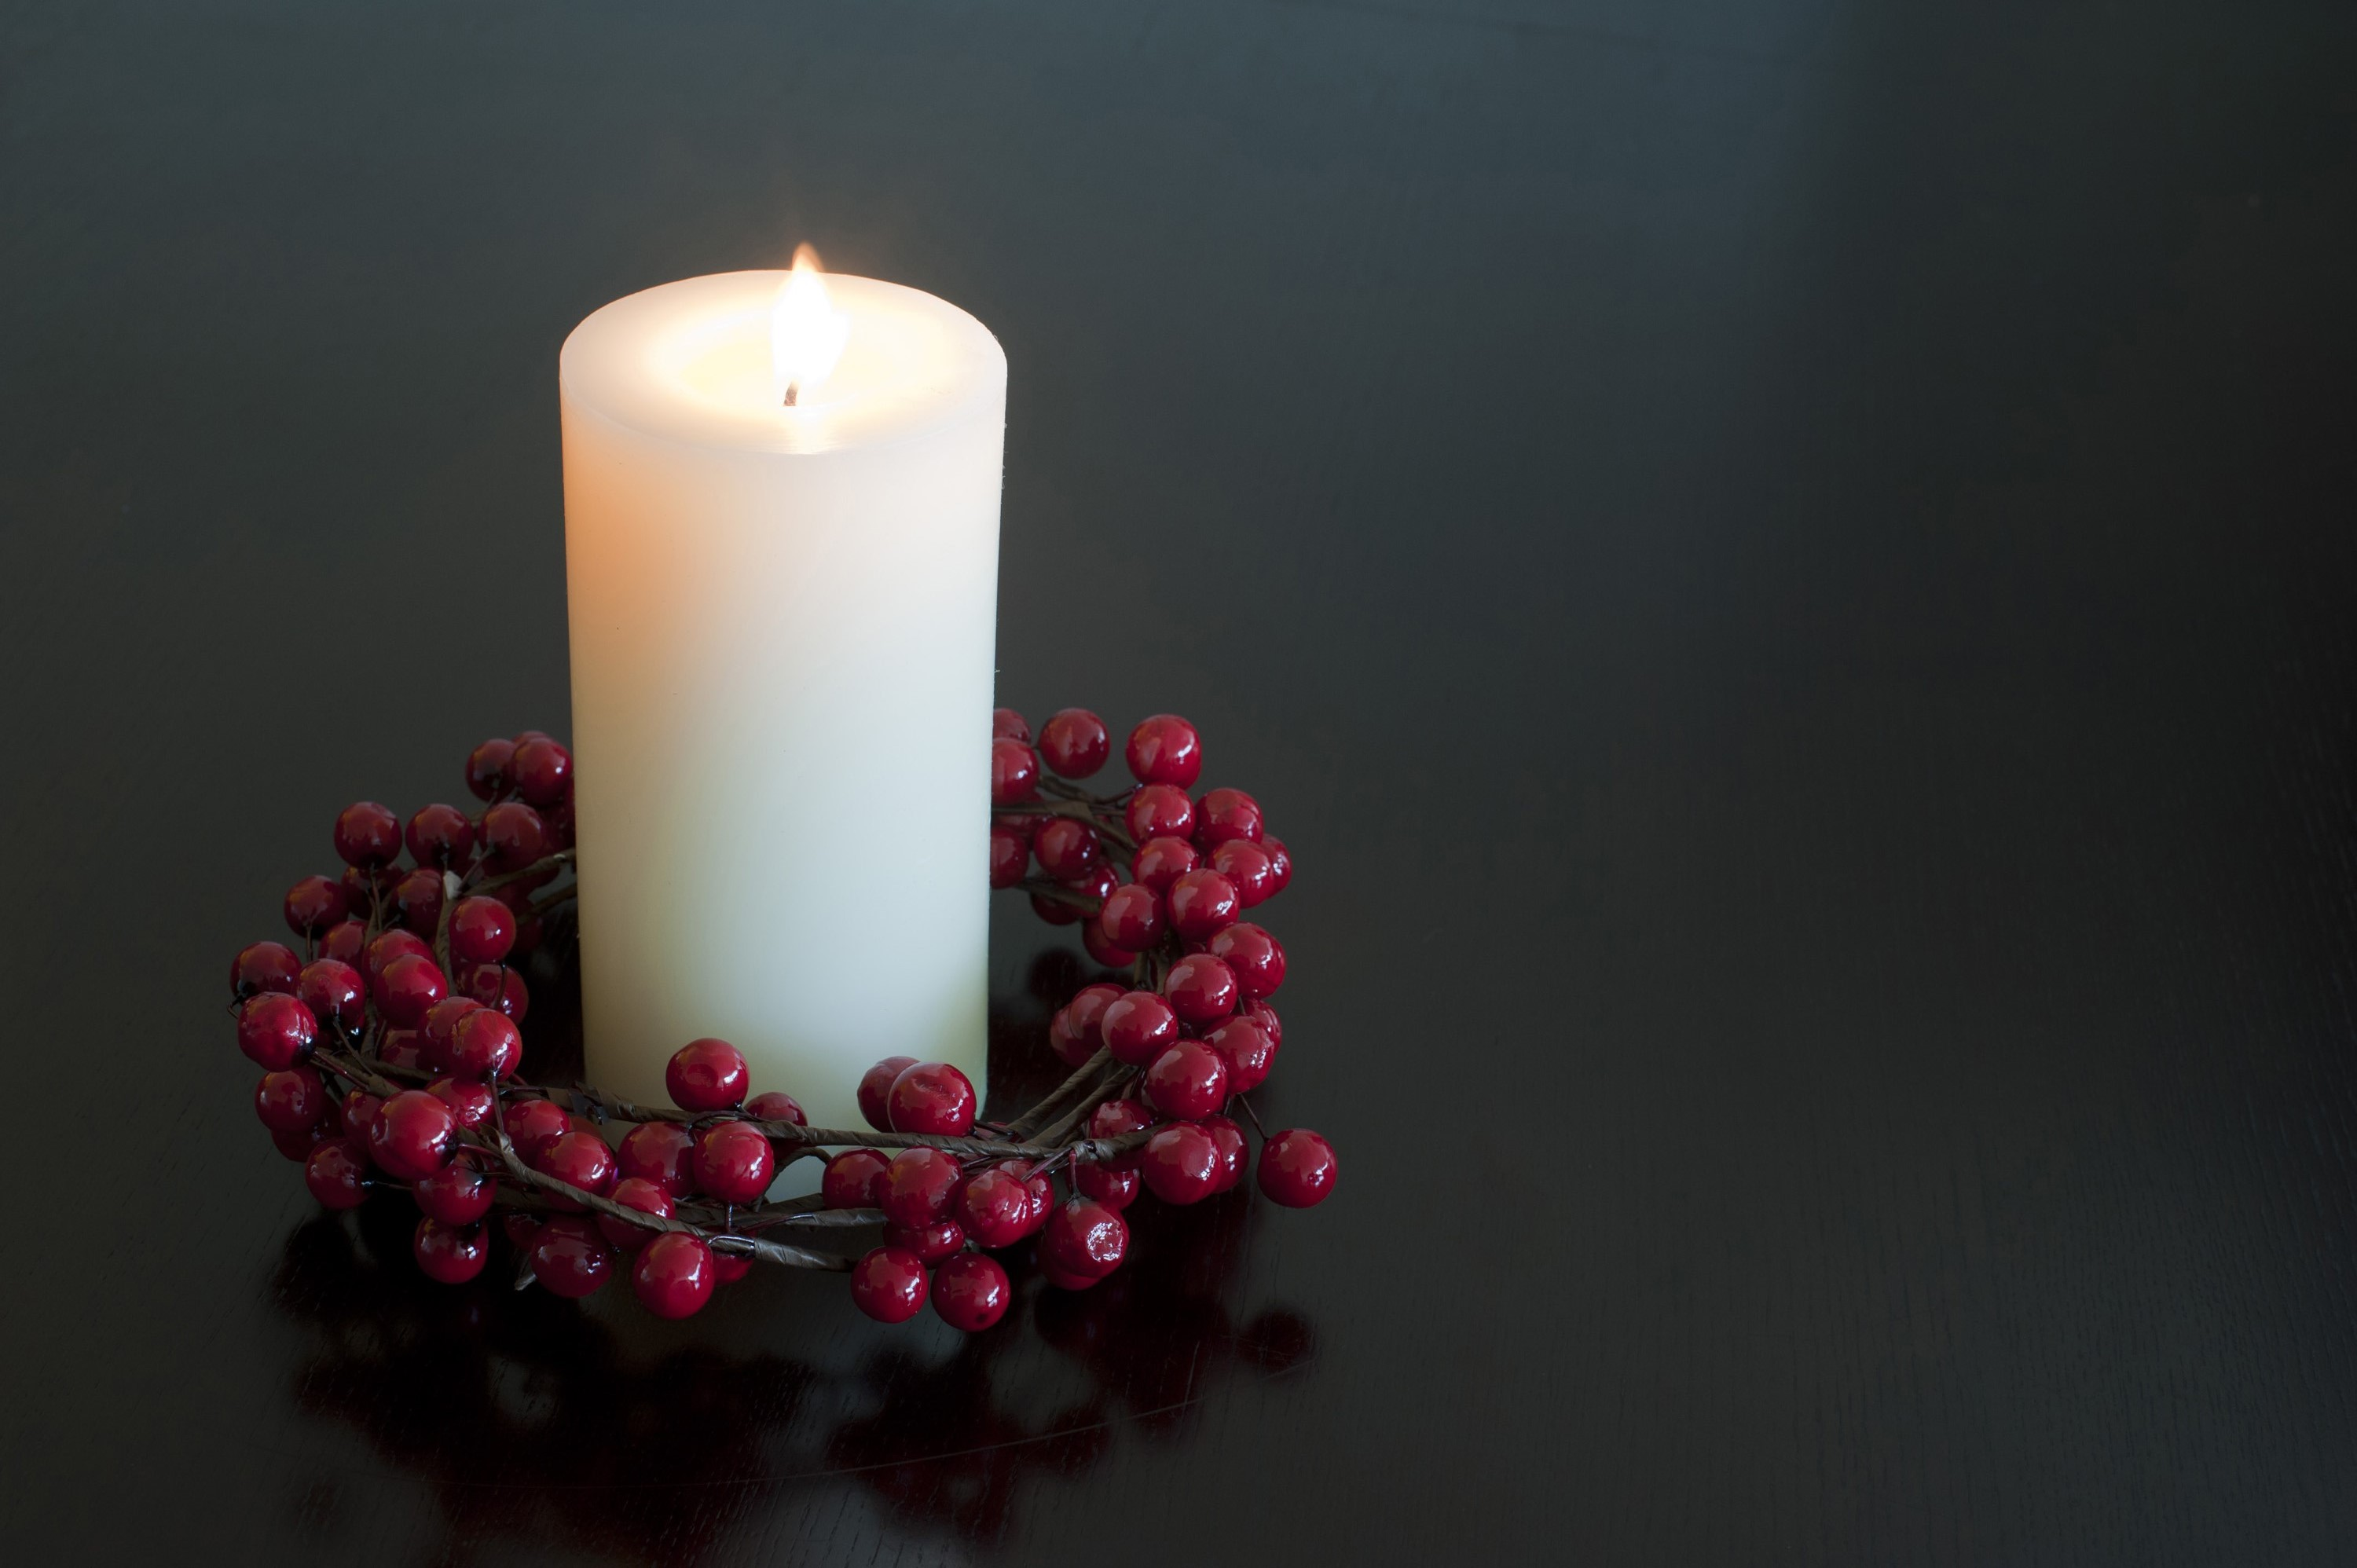 Photo Of Christmas Candle With A Berry Wreath